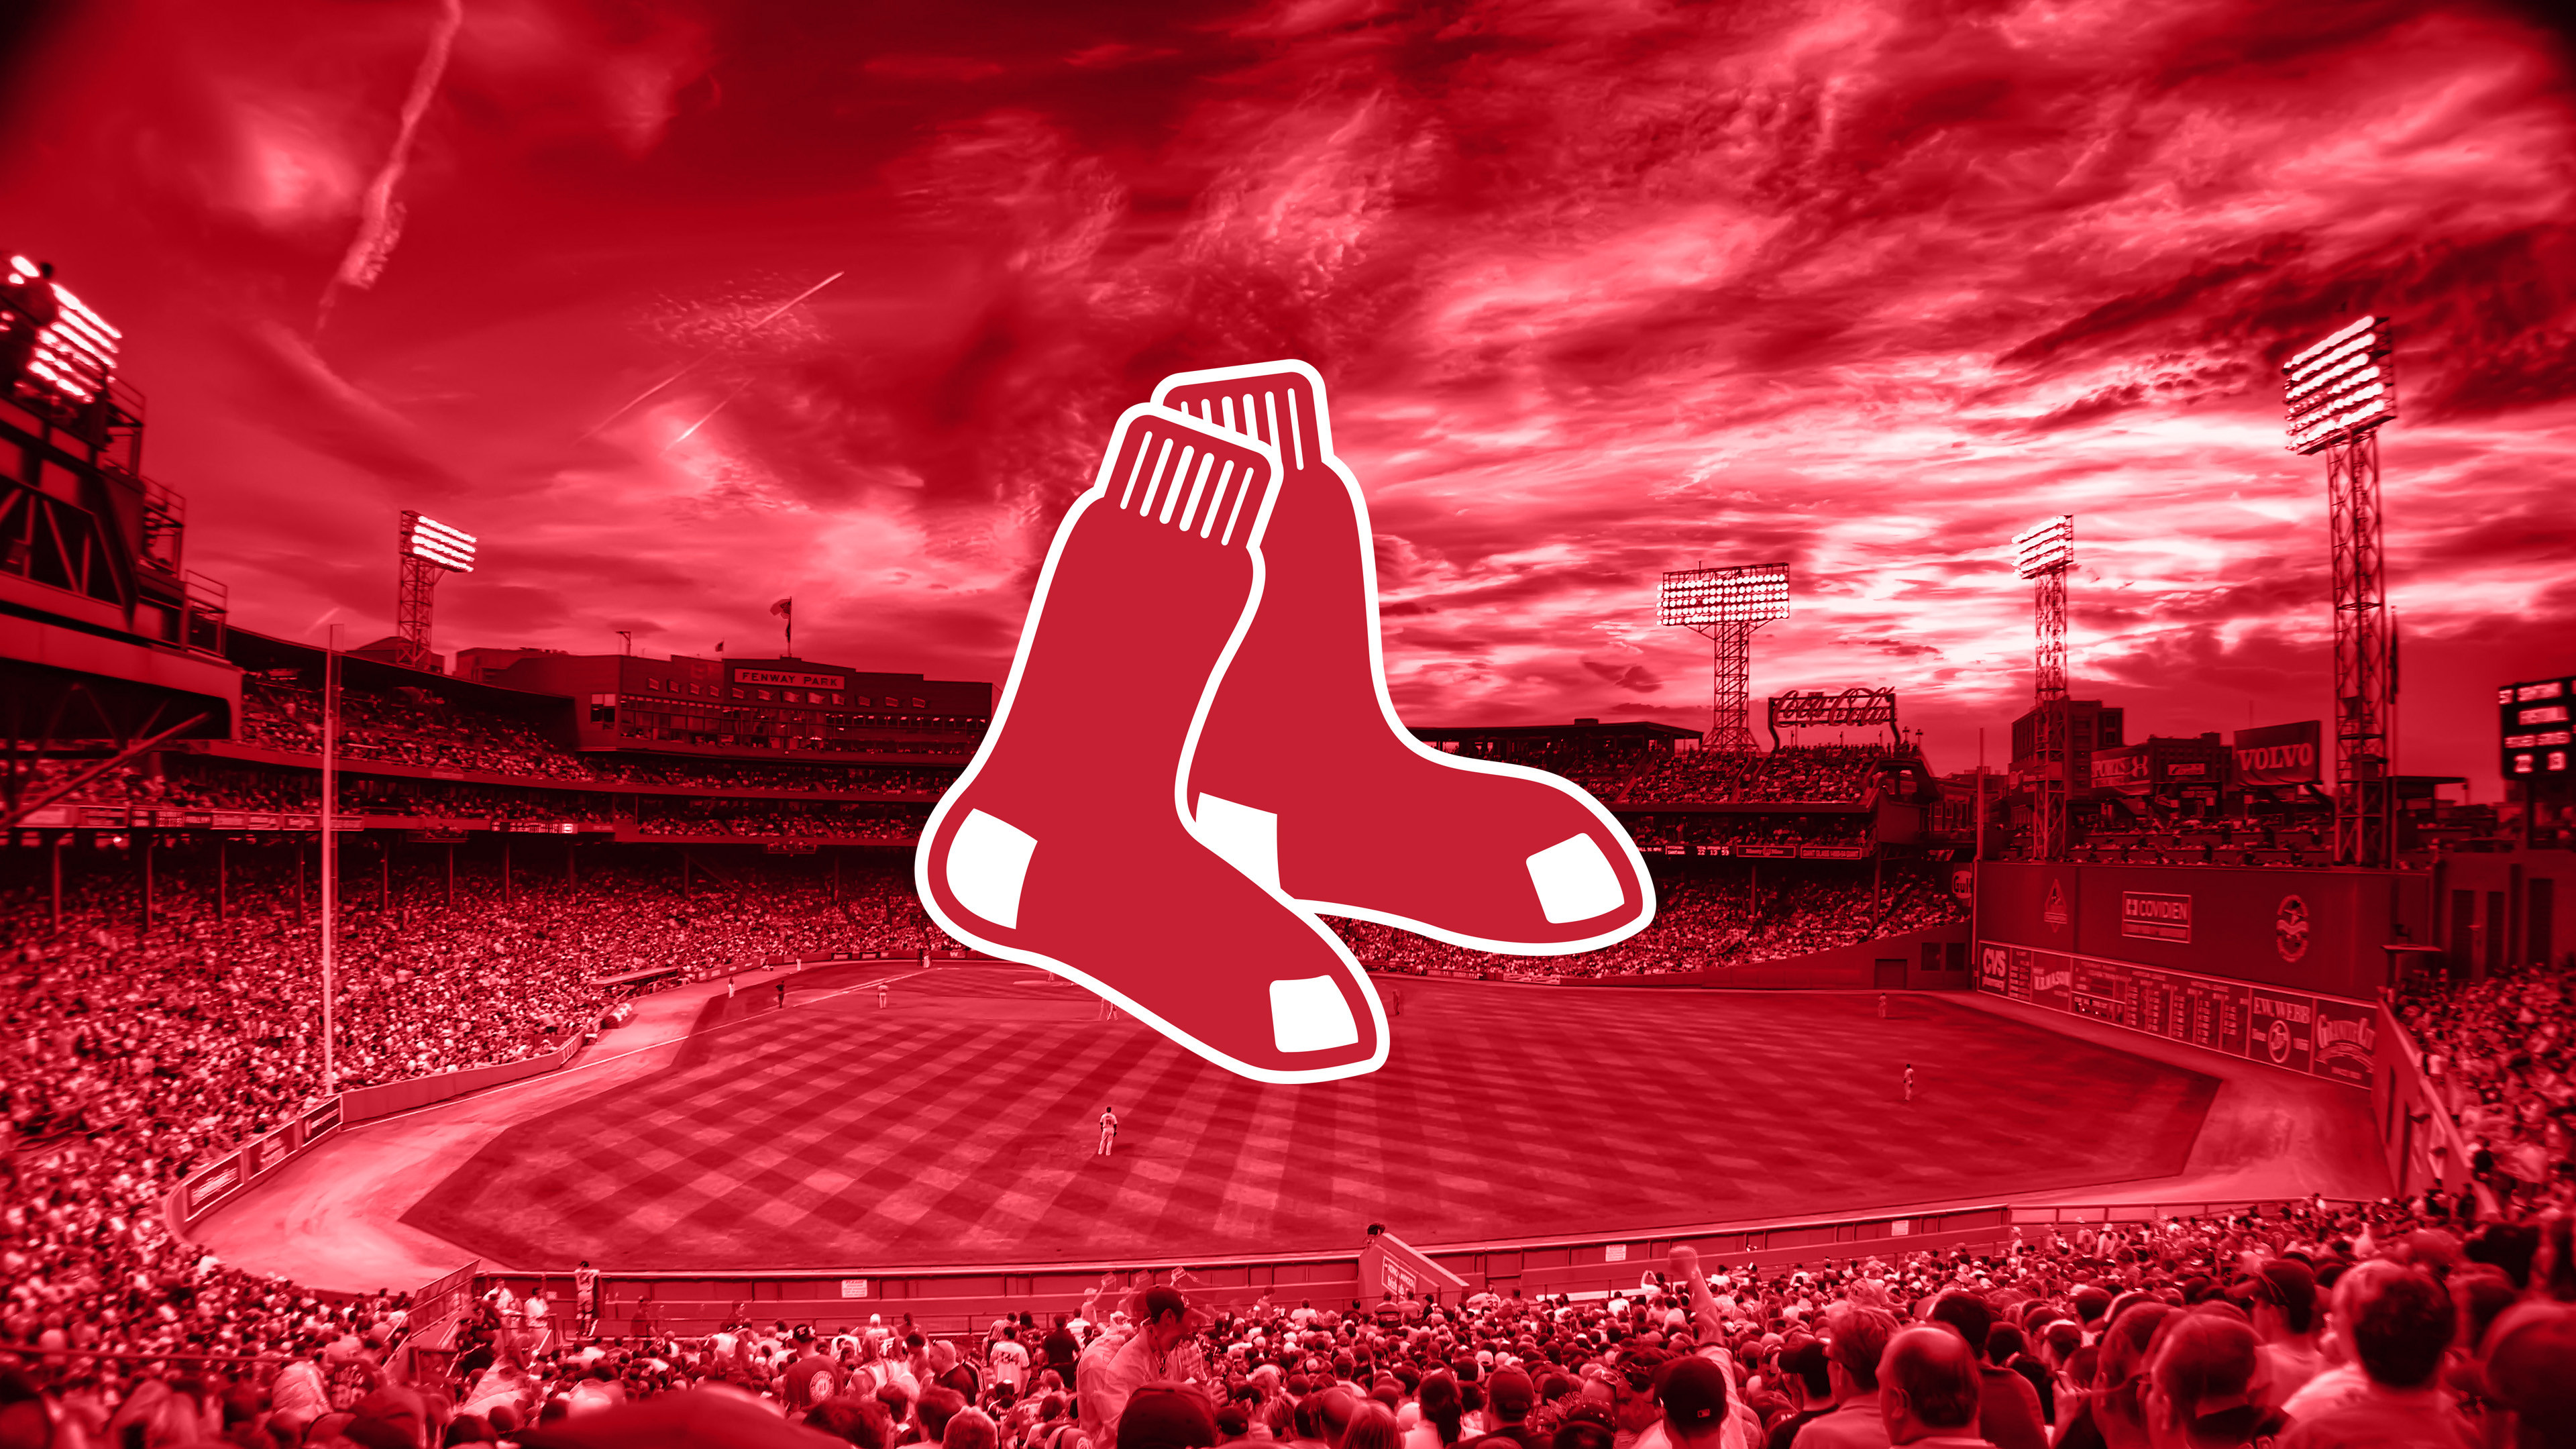 1920x1200 Red Sox HD Desktop Wallpaper